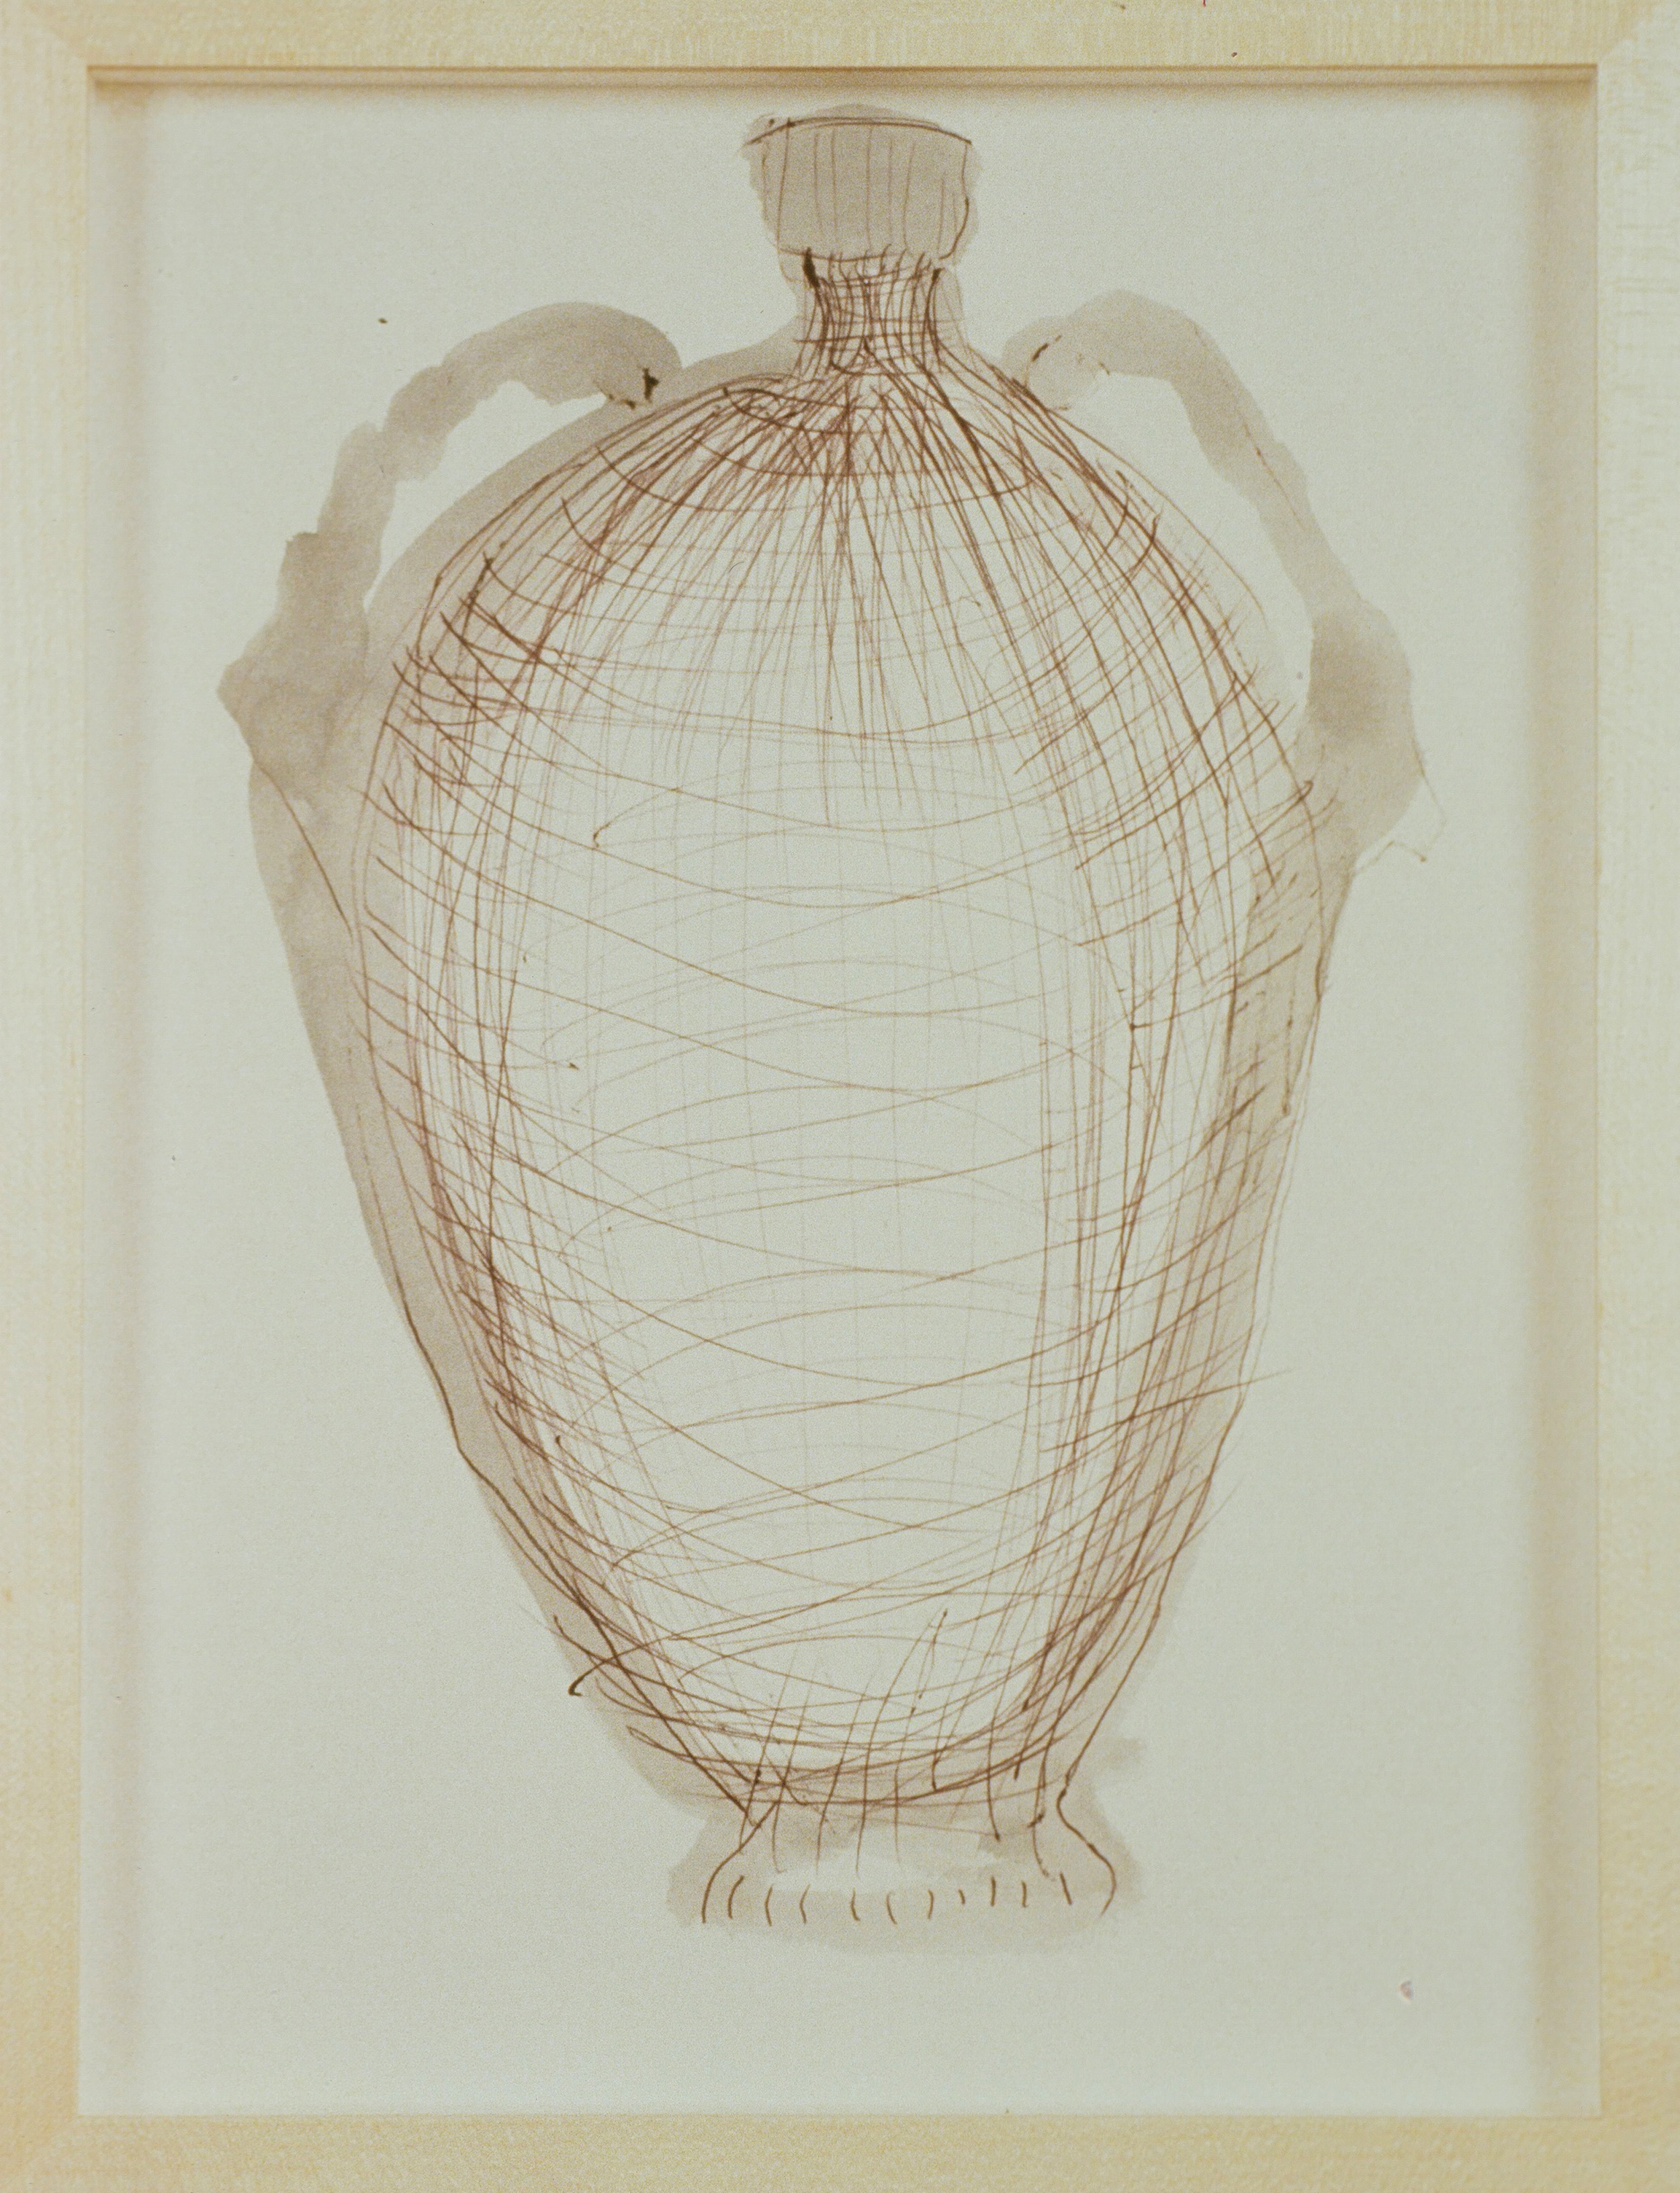 1991 - Vase Drawing brown